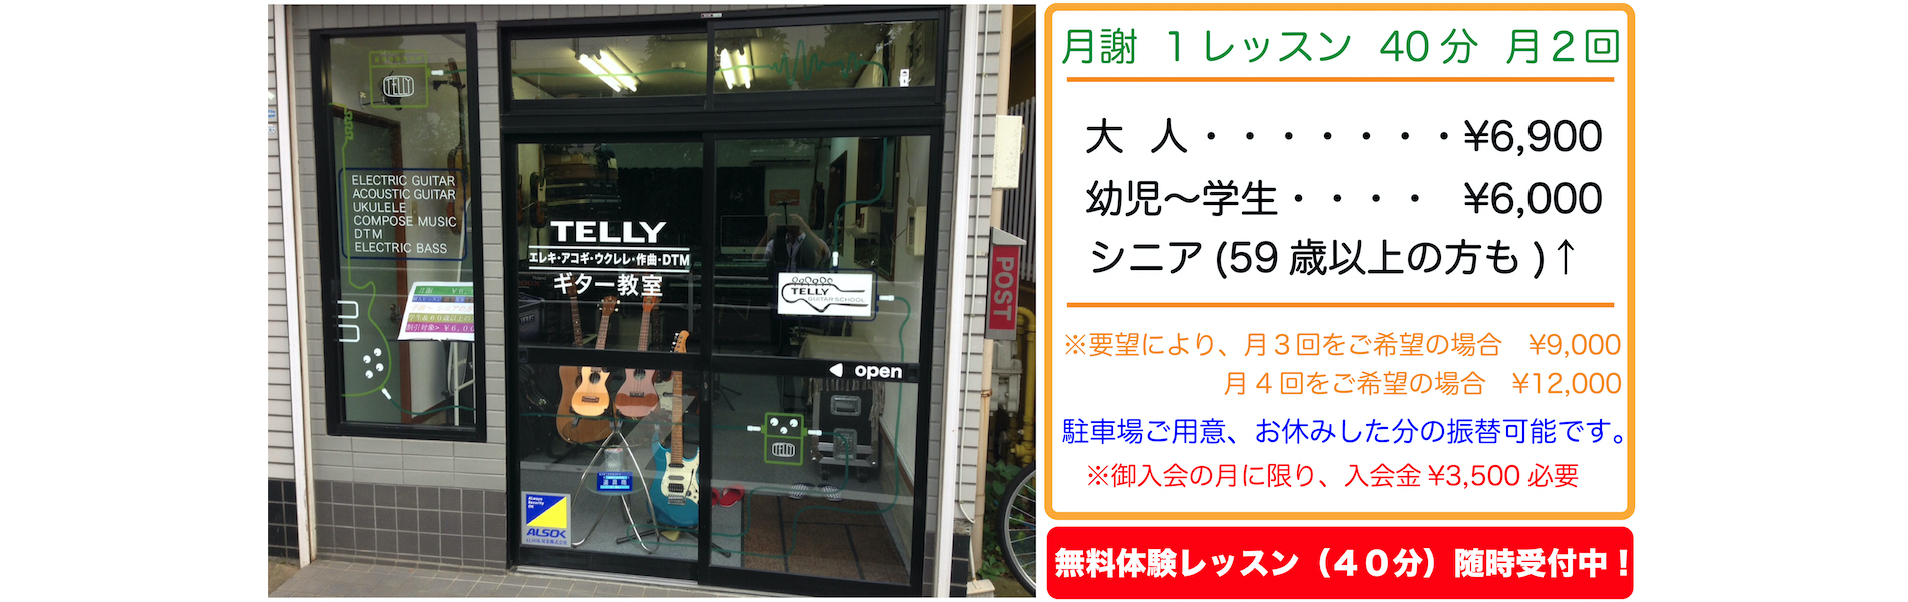 TELLYギター教室の入り口画像とお月謝一覧